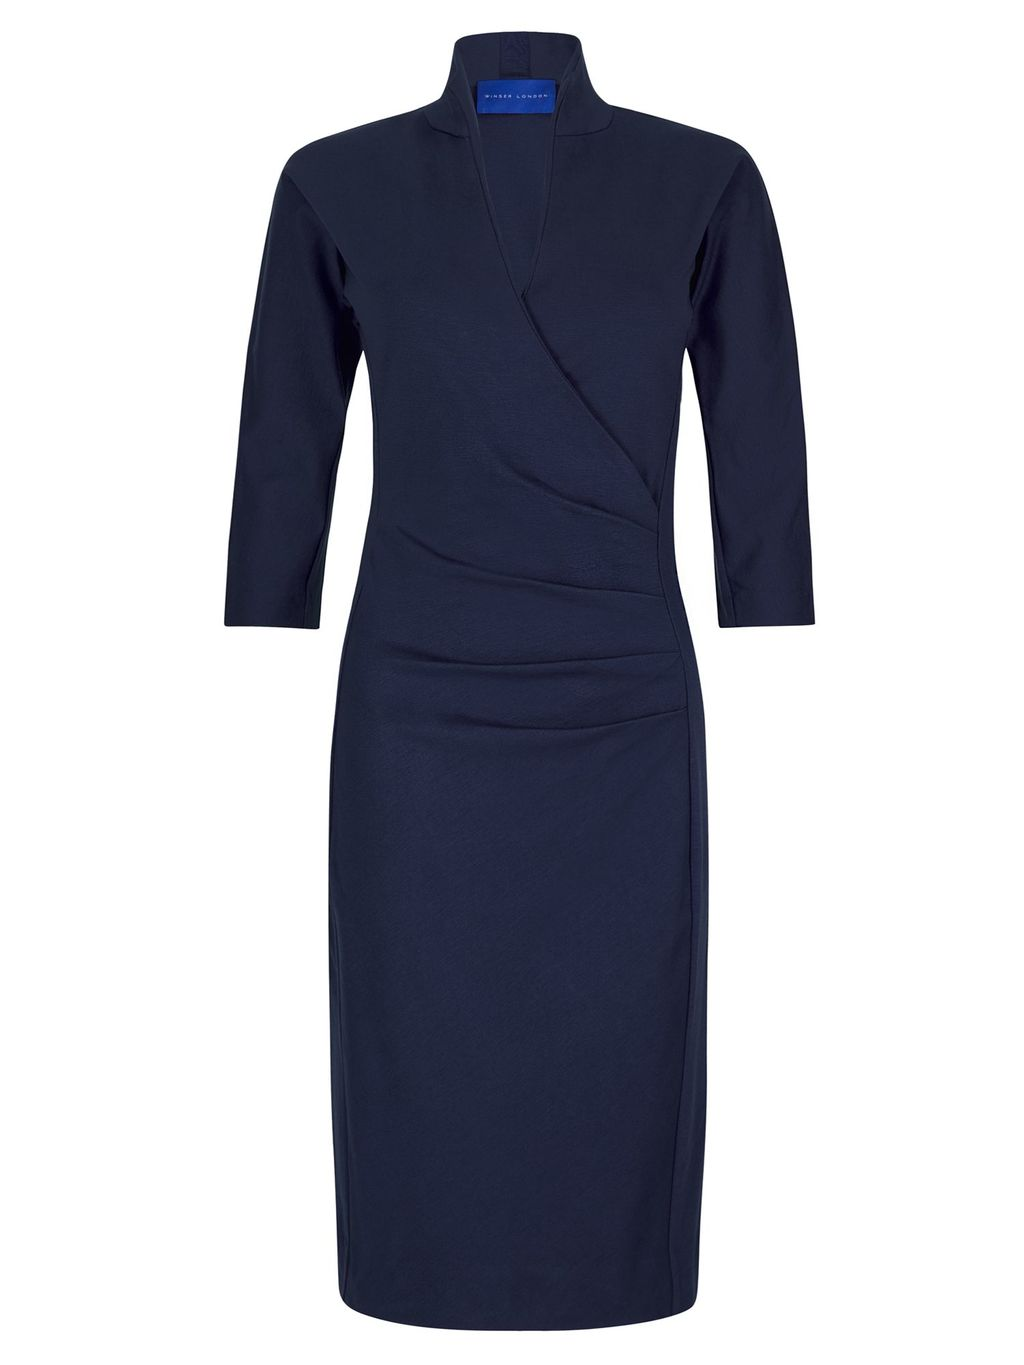 Grace Miracle Dress, Navy - style: faux wrap/wrap; neckline: v-neck; pattern: plain; hip detail: draws attention to hips; predominant colour: navy; occasions: evening; length: on the knee; fit: body skimming; fibres: viscose/rayon - stretch; sleeve length: half sleeve; sleeve style: standard; pattern type: fabric; texture group: jersey - stretchy/drapey; season: s/s 2016; wardrobe: event